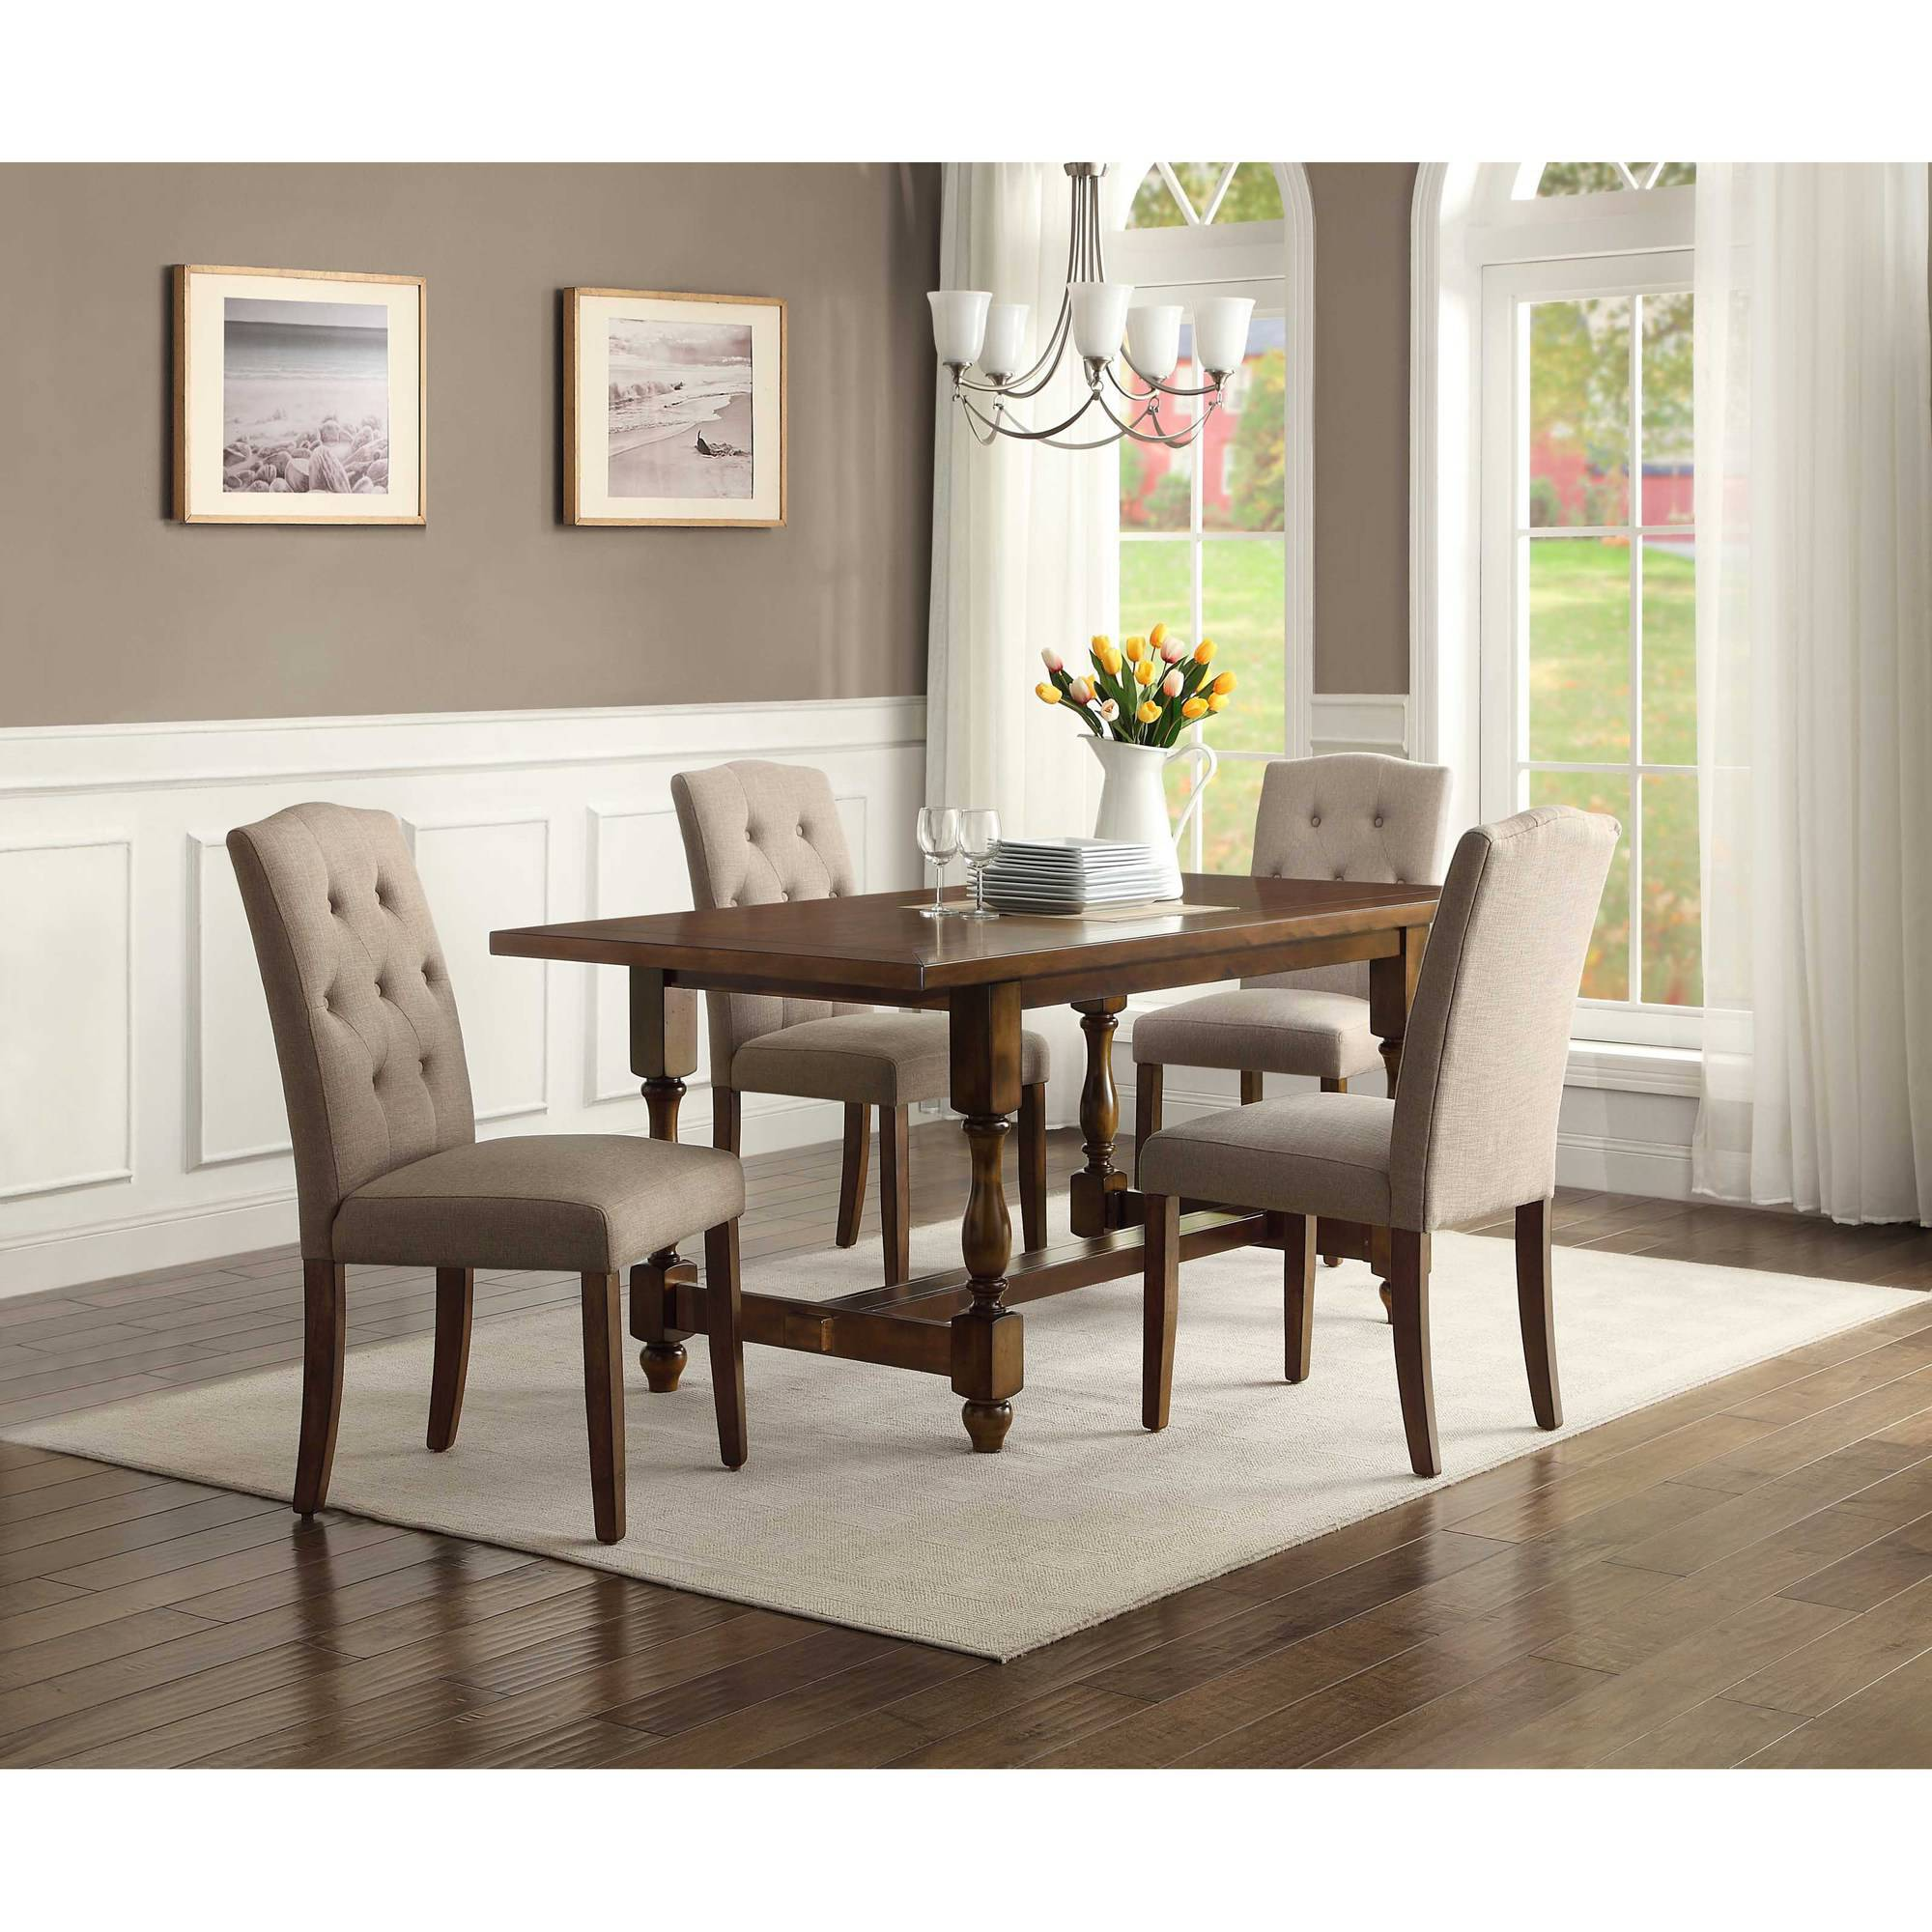 Better Homes and Gardens Maddox Crossing Dining Bench  Espresso    Walmart com. Better Homes and Gardens Maddox Crossing Dining Bench  Espresso